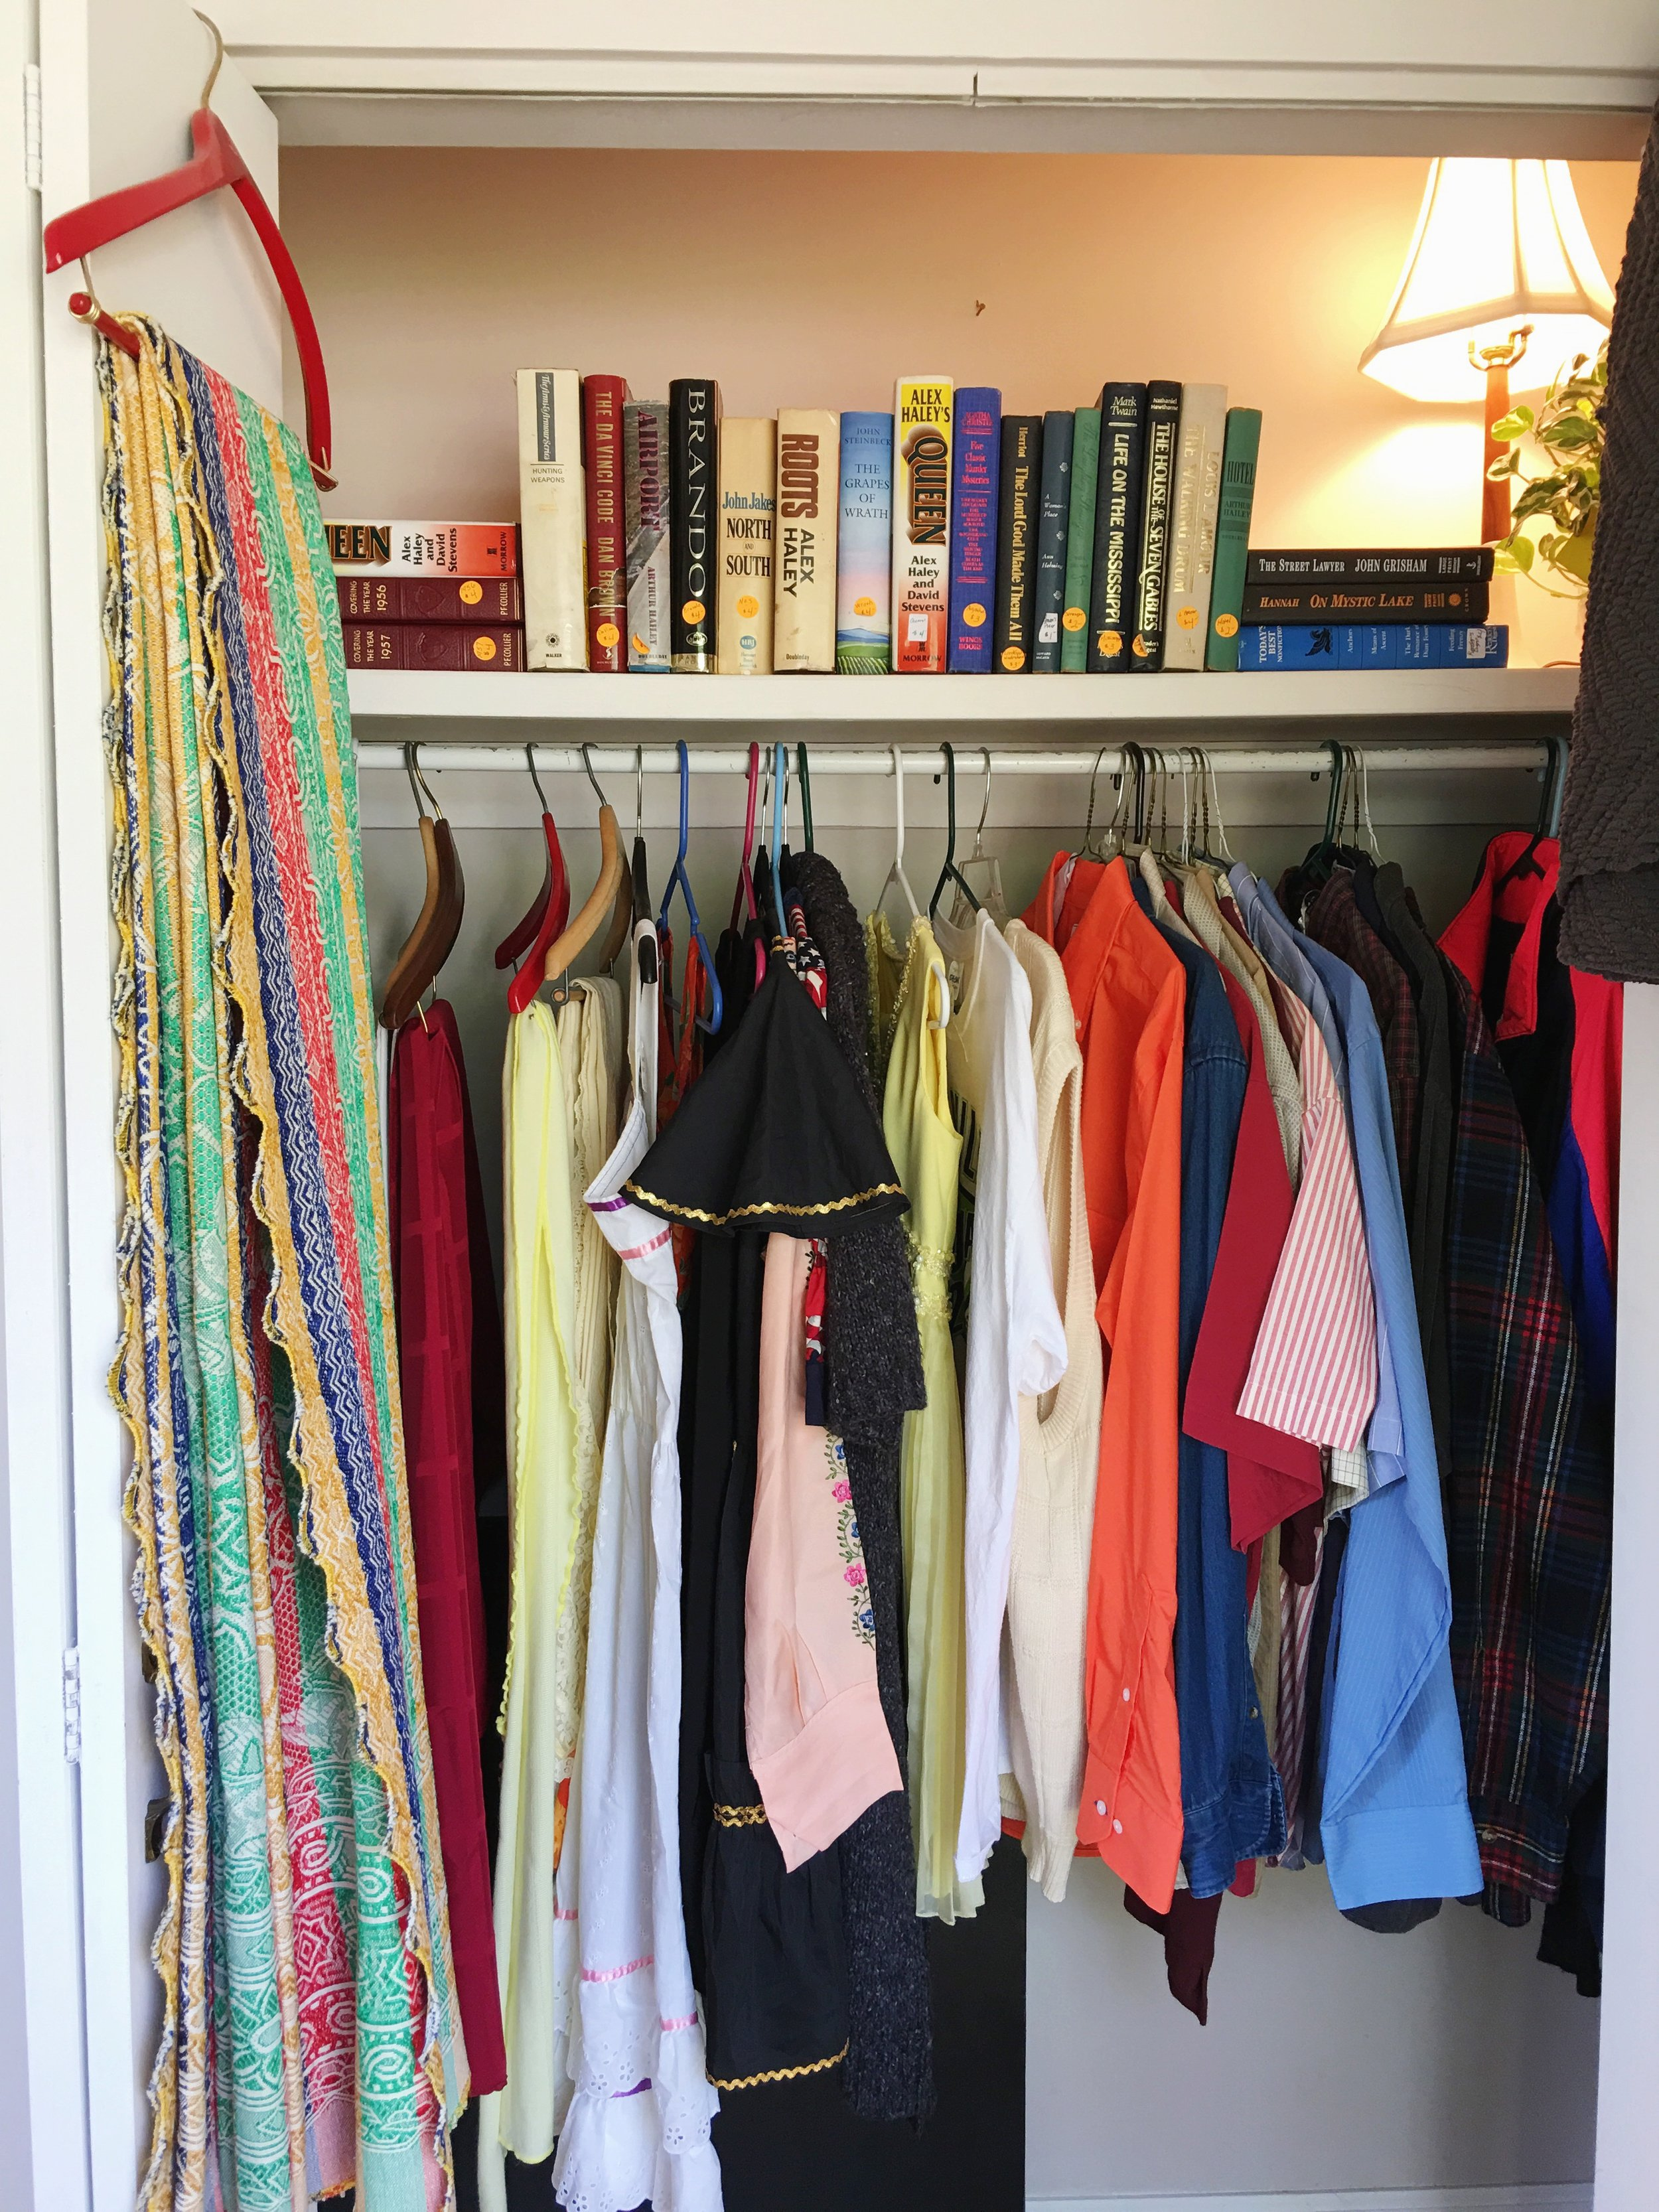 You literally get to shop someone's closet at estate sales!